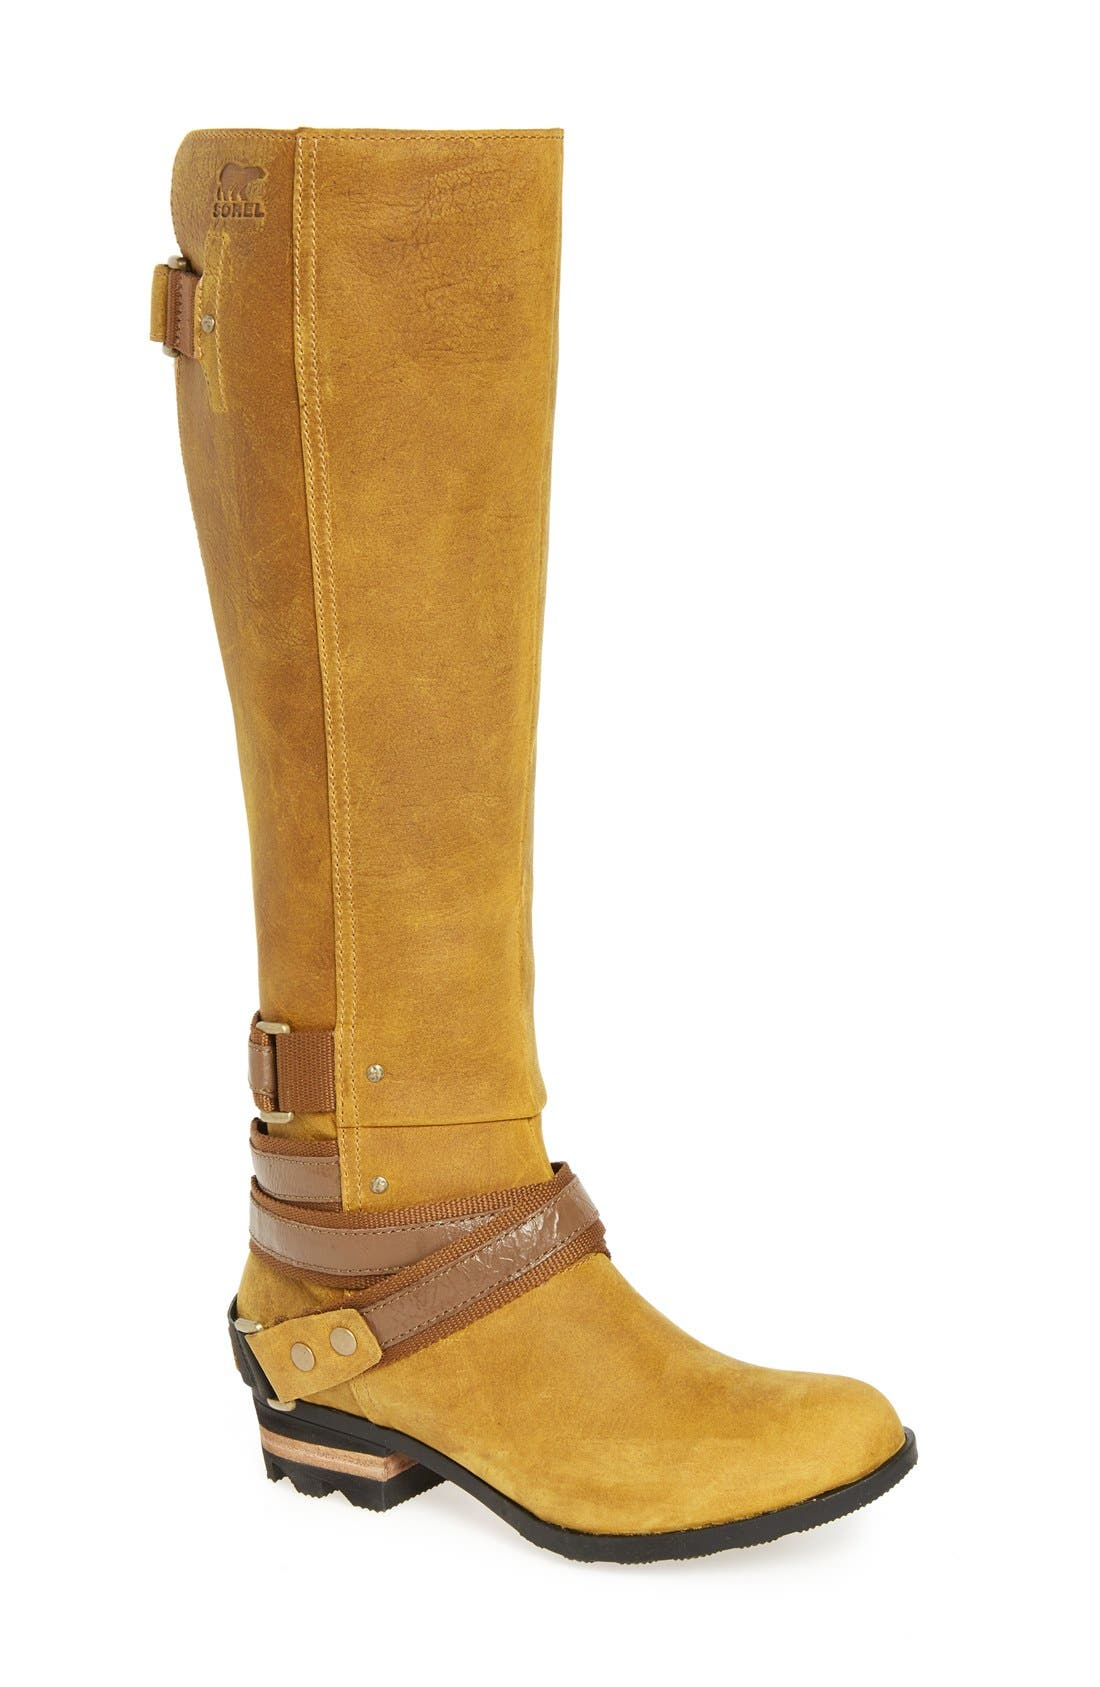 Main Image - SOREL Lolla Water Resistant Tall Boot (Women)